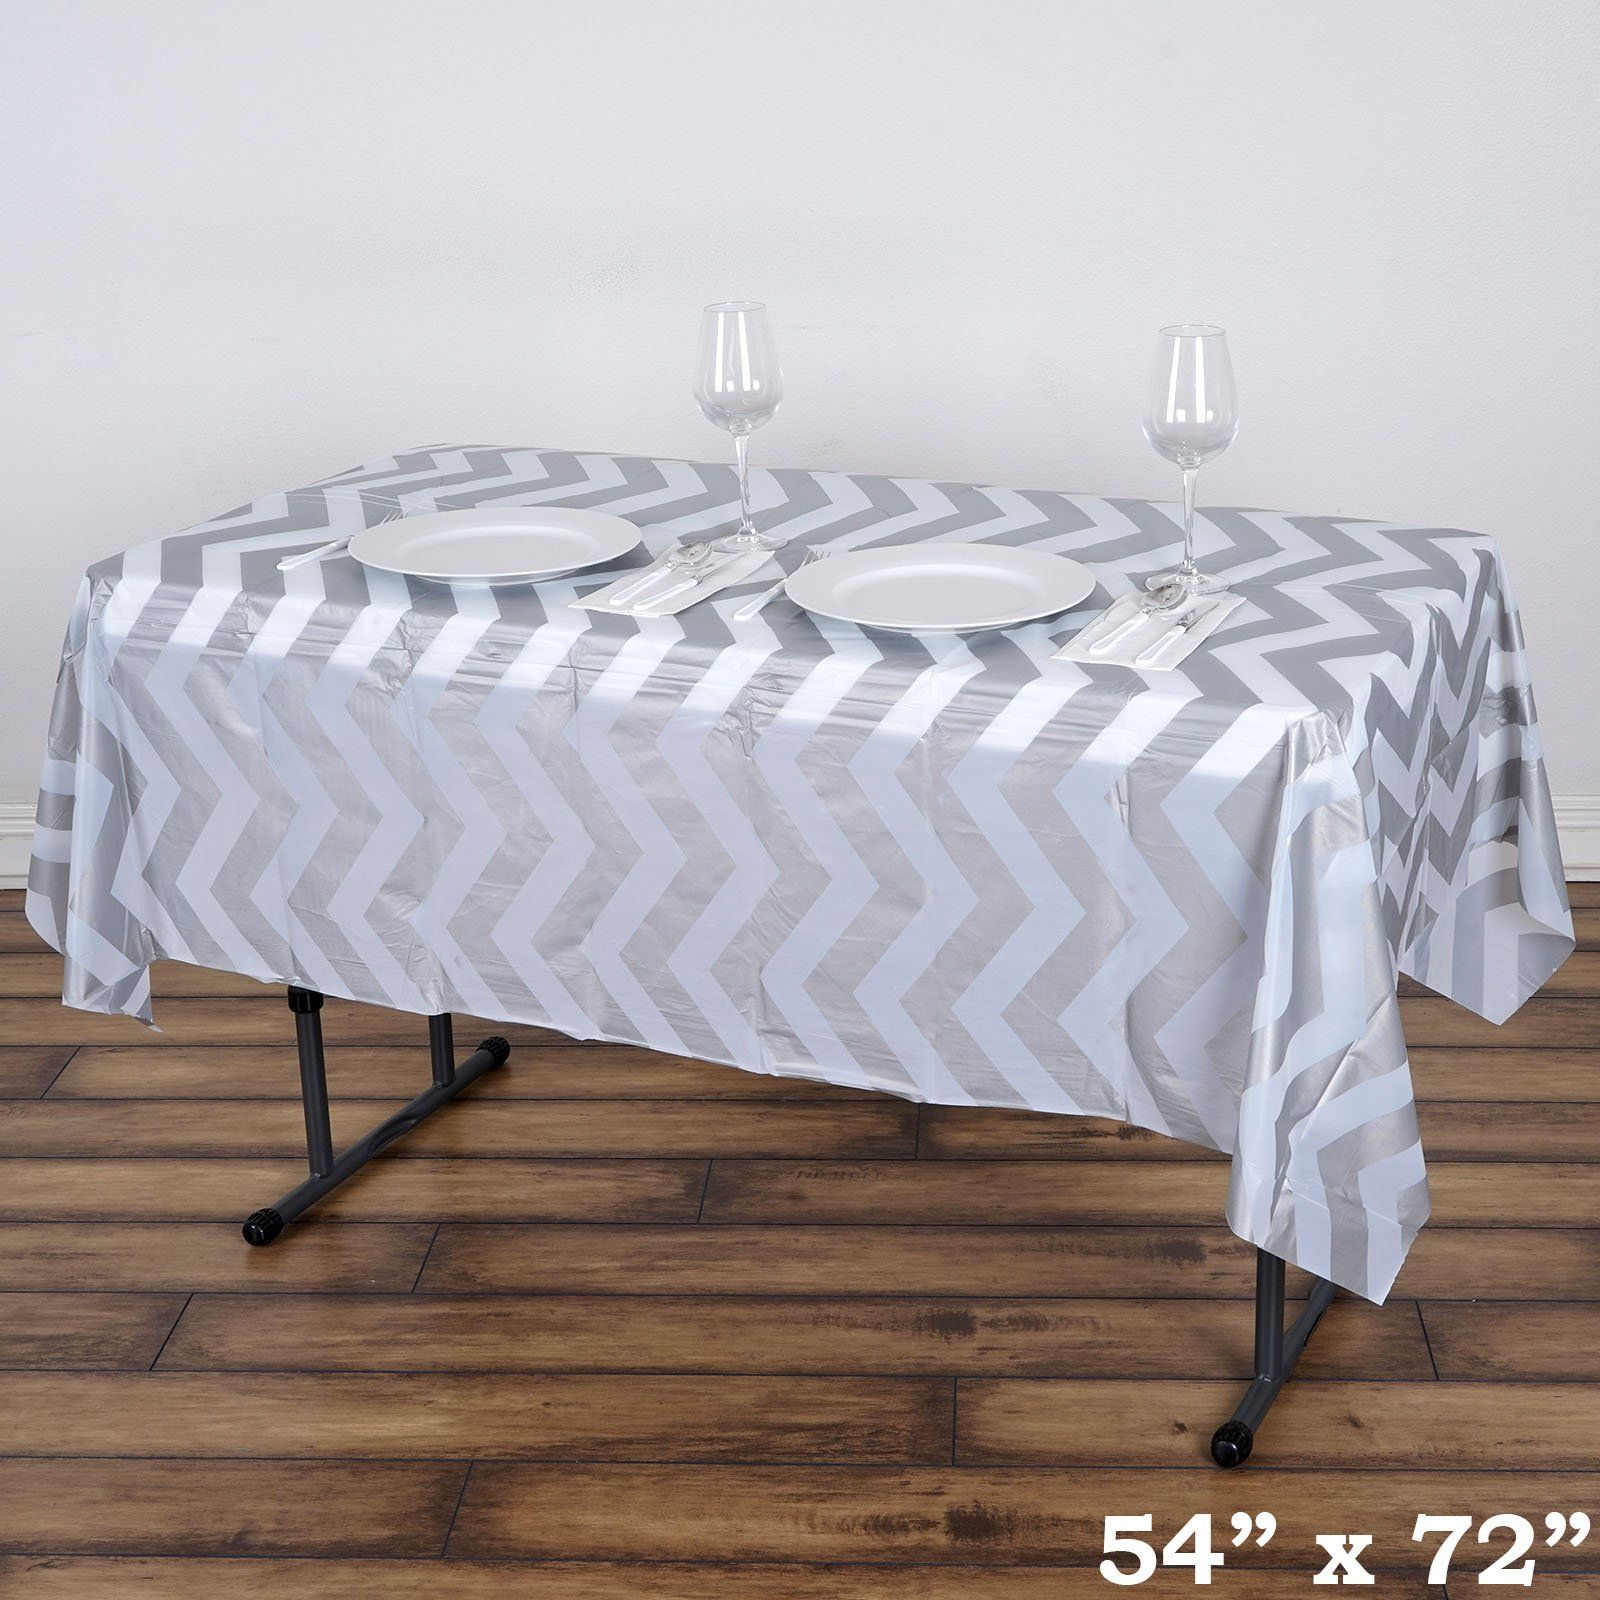 54 X 72 Silver 10 Mil Thick Chevron Waterproof Tablecloth Pvc Rectangle Disposable Tablecloth Plastic Table Covers Plastic Tables Waterproof Tablecloth